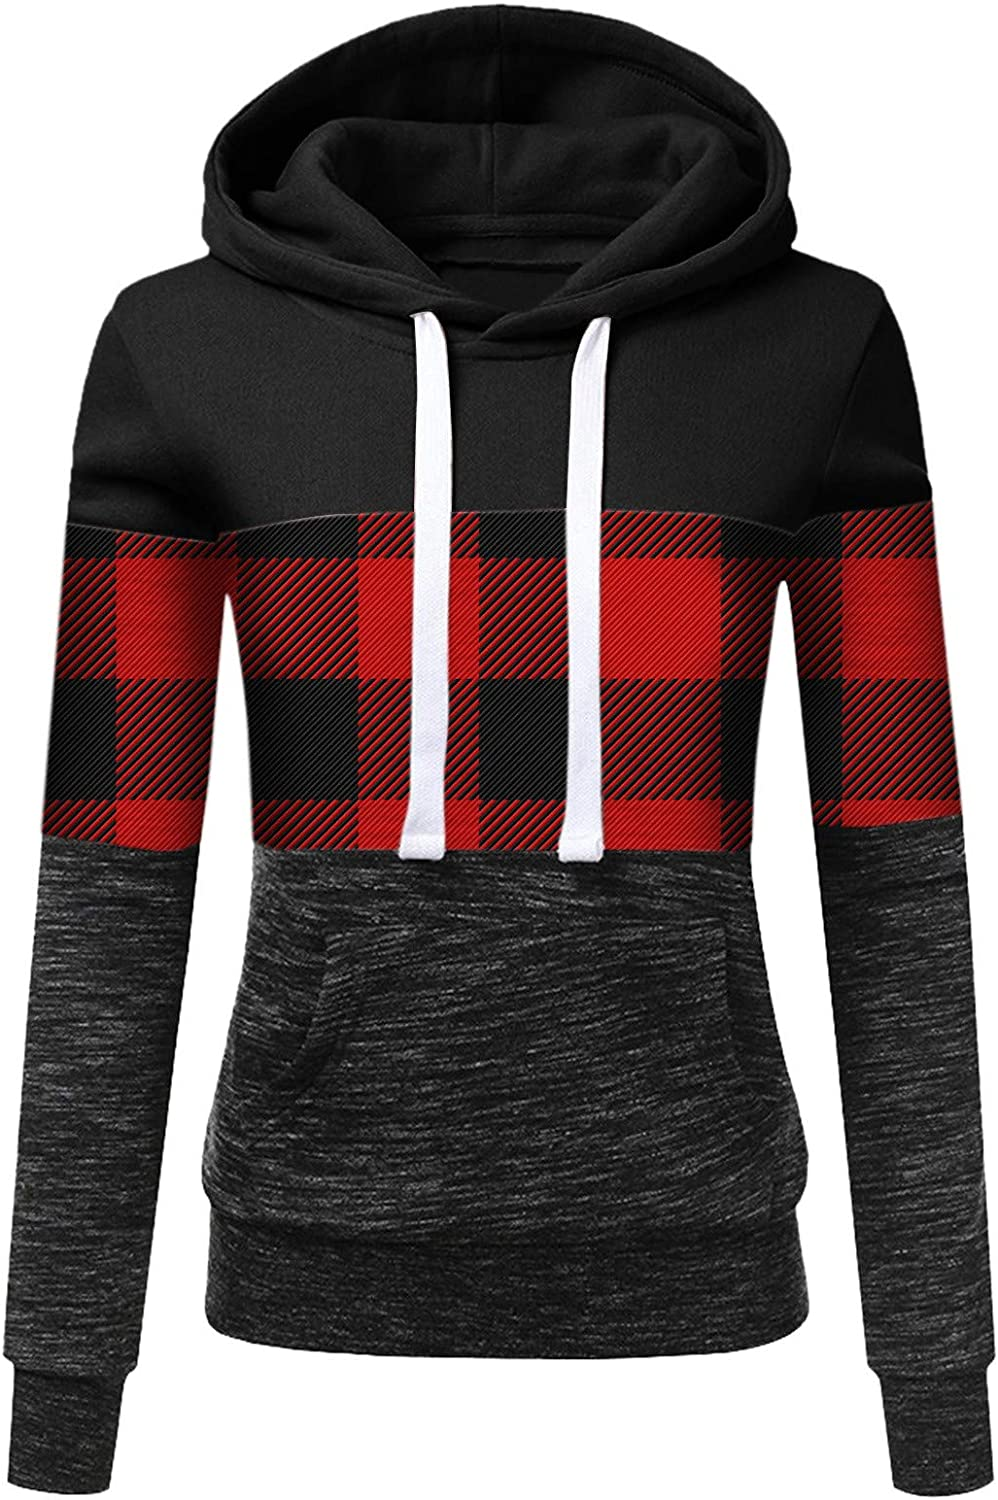 Outlet ☆ Free Shipping Hotkey Hoodies for Women Indefinitely Long Hooded Red Plaid Sweatshirt Sleeve